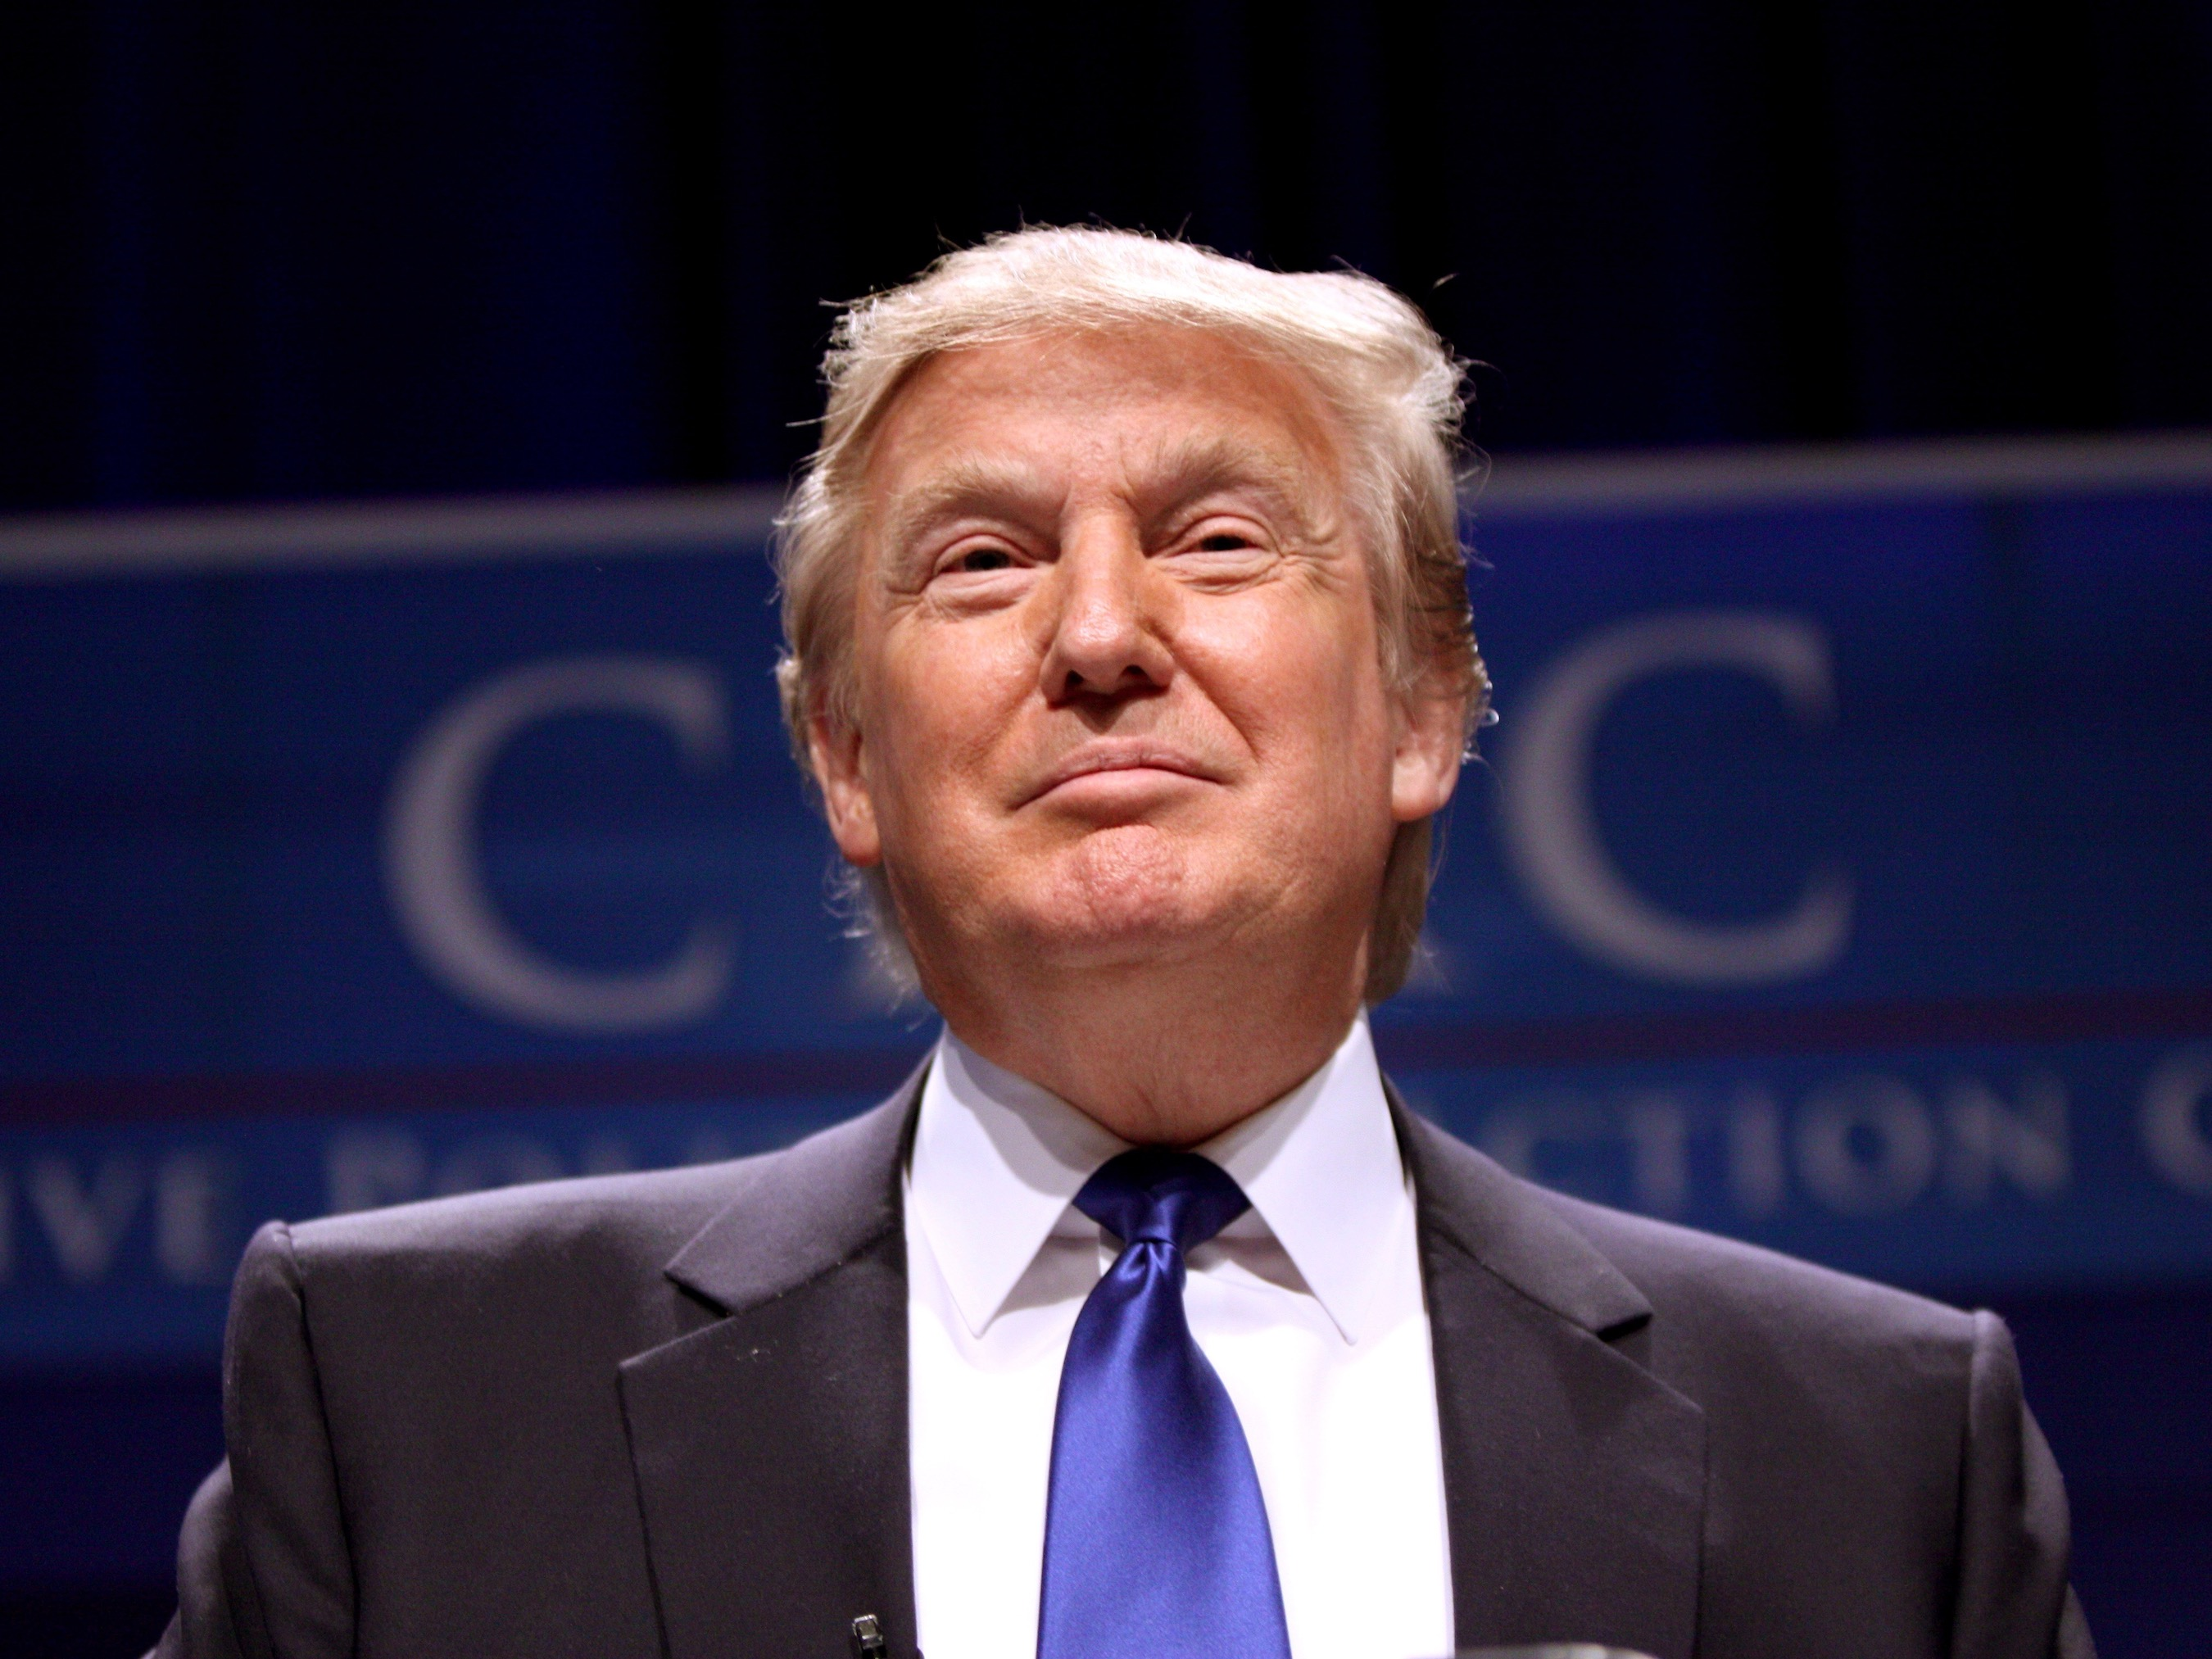 Steve Russell: Sovereignty faces serious threat under Donald Trump